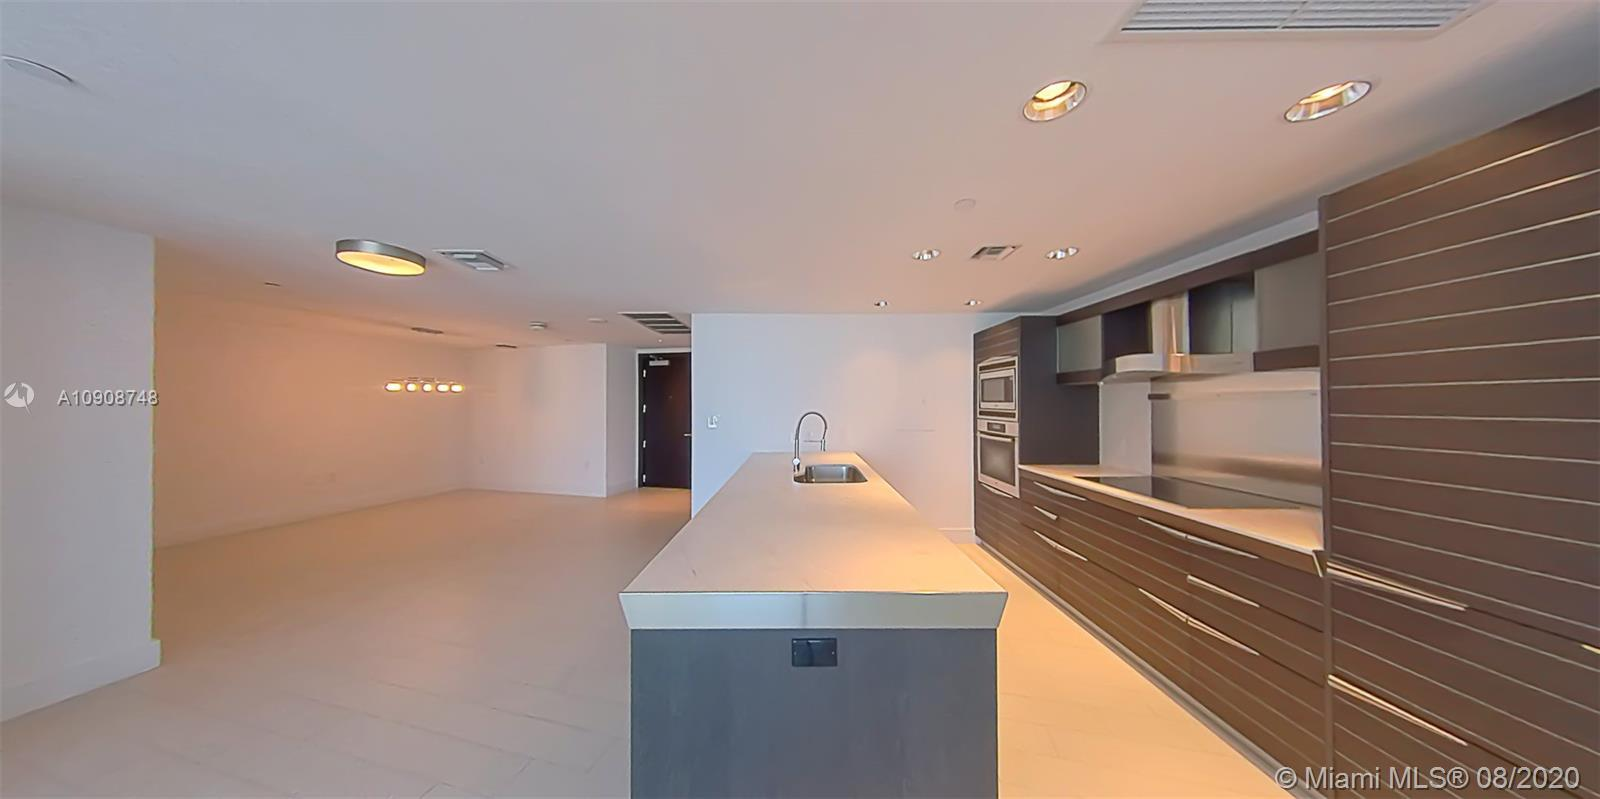 Enjoy sweeping views of Miami's Biscayne Bay, Brickell and the Miami River from this beautiful 2BD/2